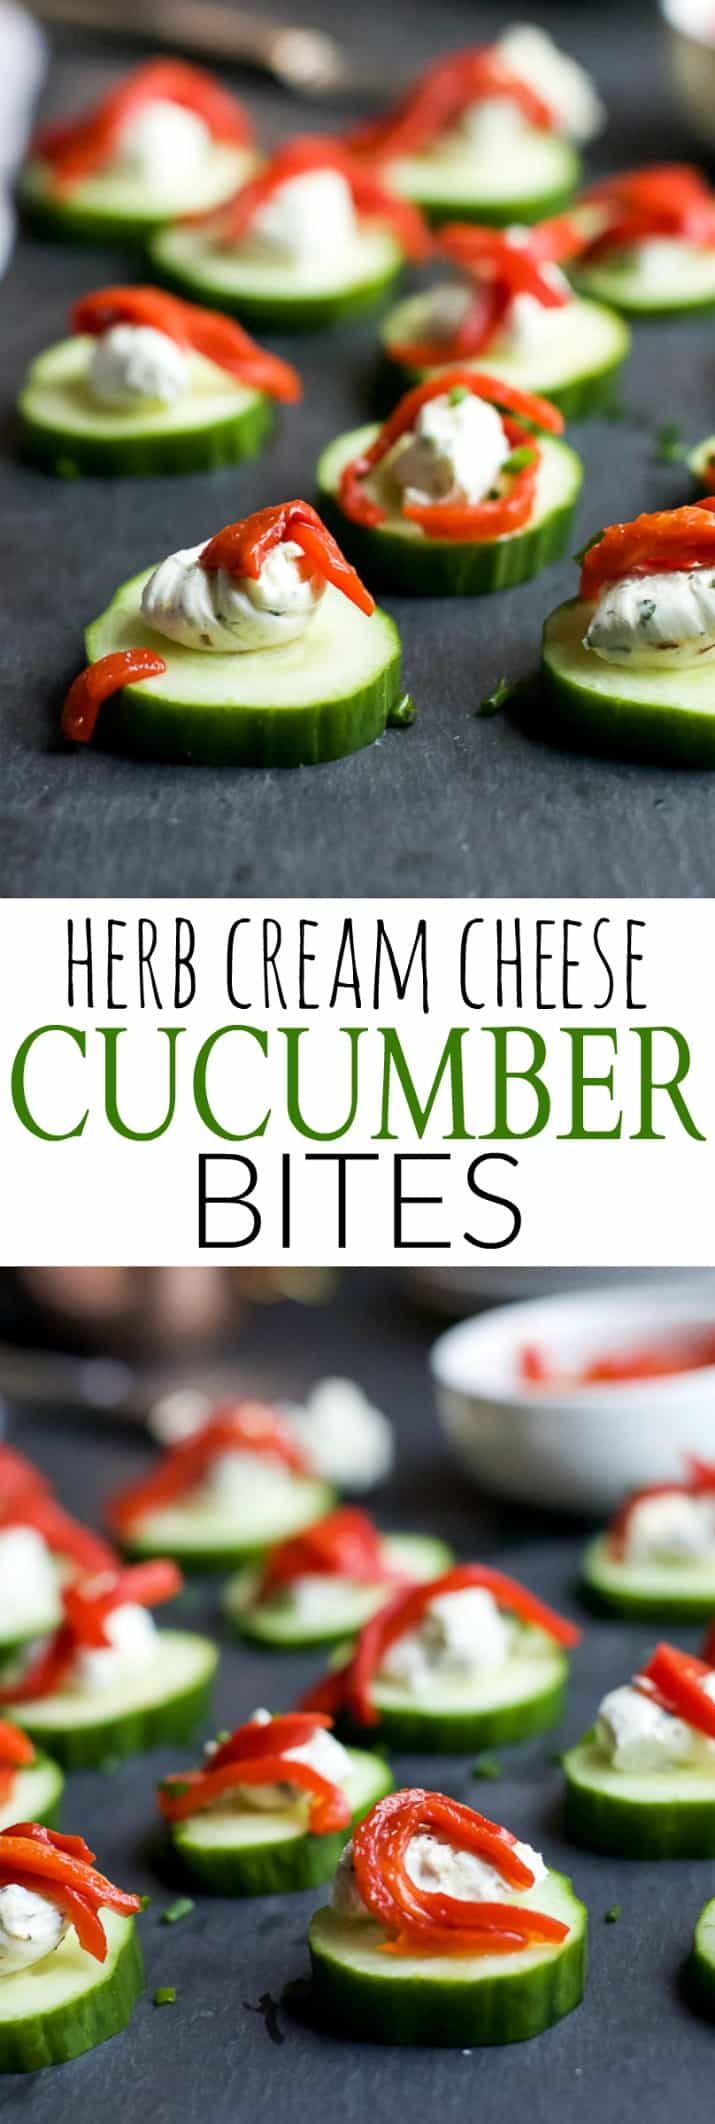 Fresh Simple Cucumber Bites topped with a zesty Herb Cream Cheese and sweet Piquillo Peppers. The perfect refreshing appetizer recipe for your next party!